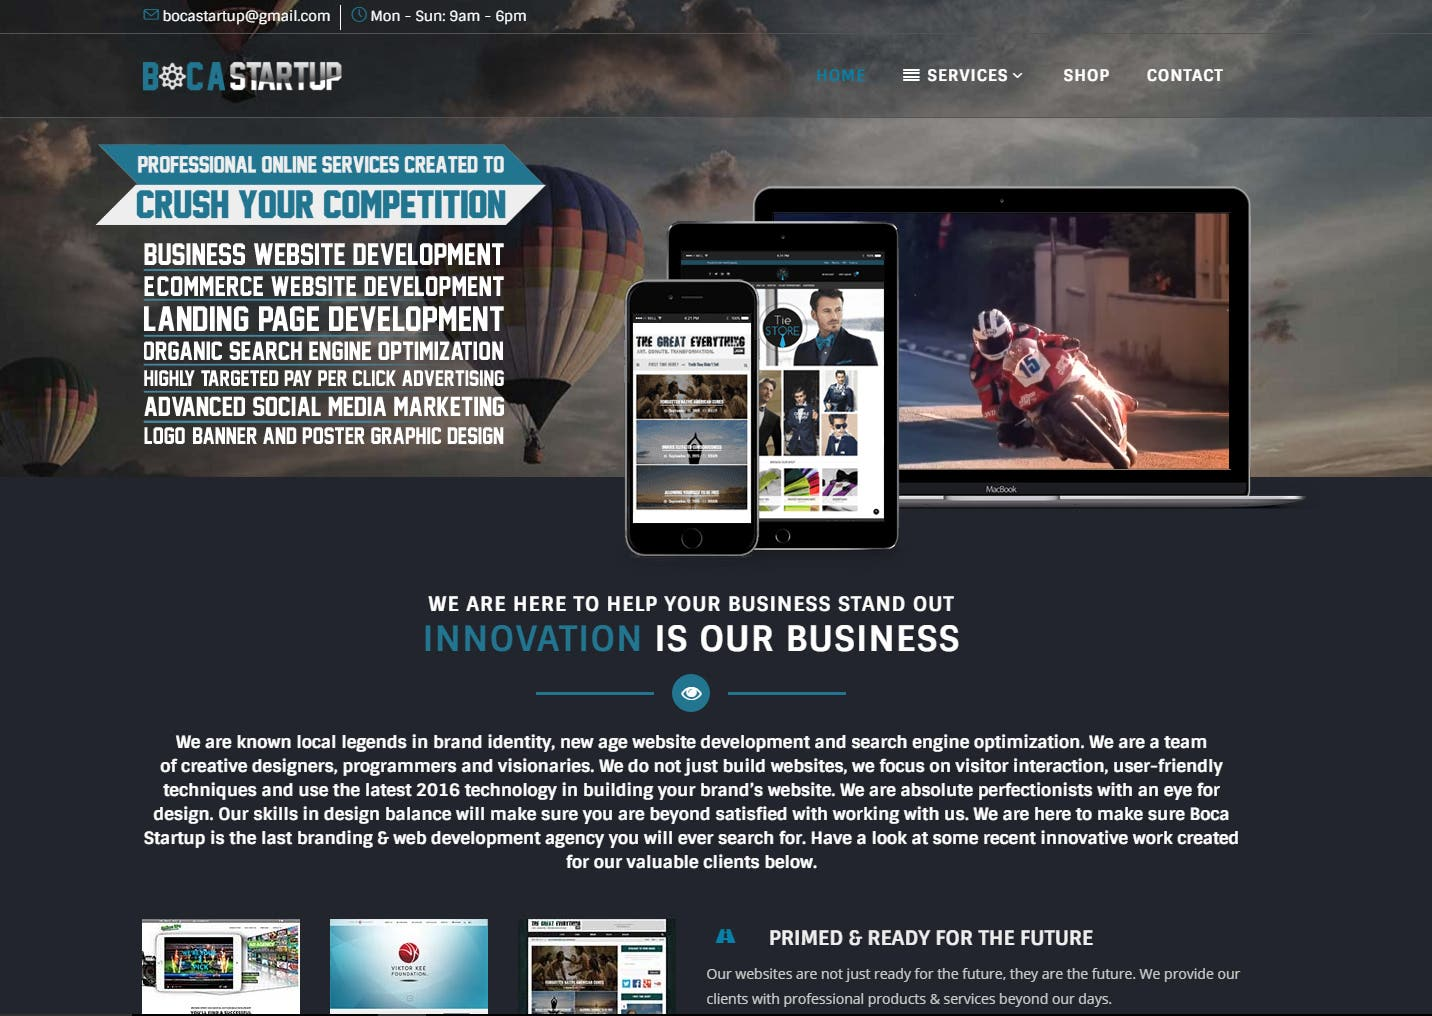 Online services company website